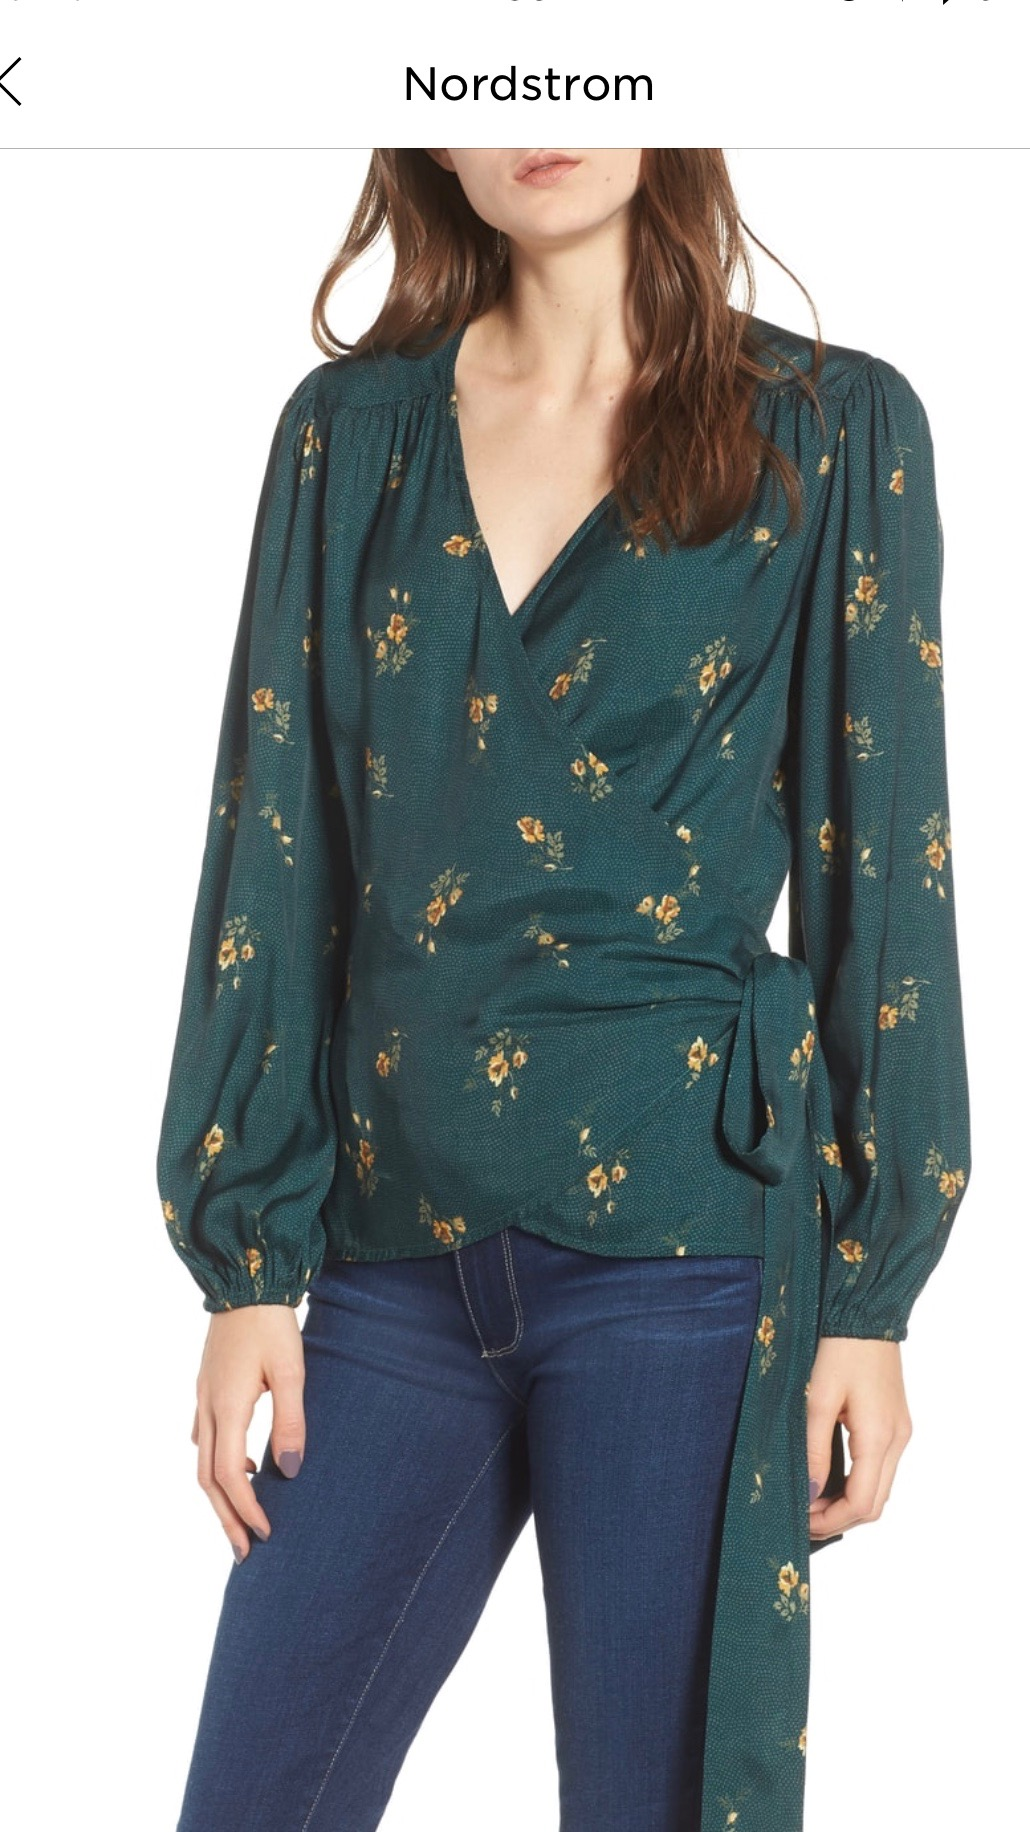 Hinge Floral Spot Wrap Top   GREEN BUG DOT MIX FLORAL, Small  $52.90